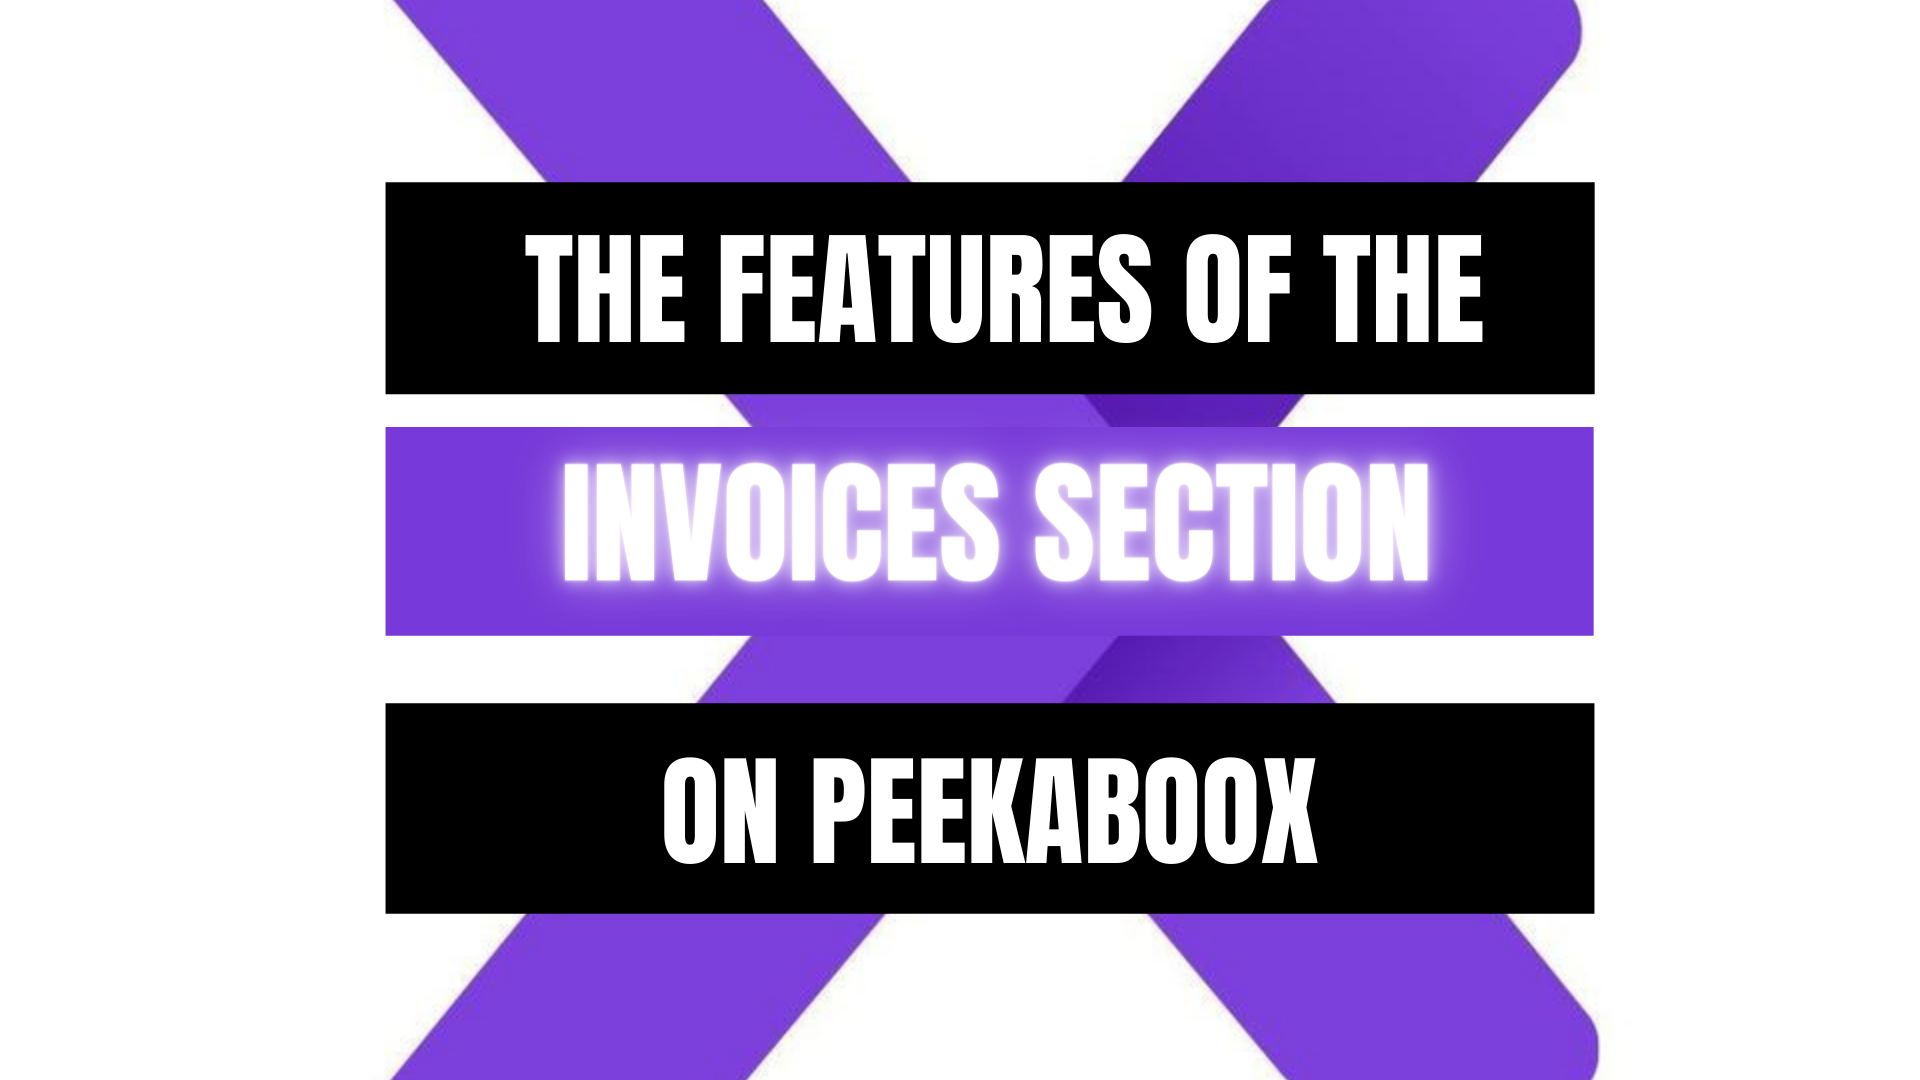 Peekaboox - The features of the Invoices section on Peekaboox